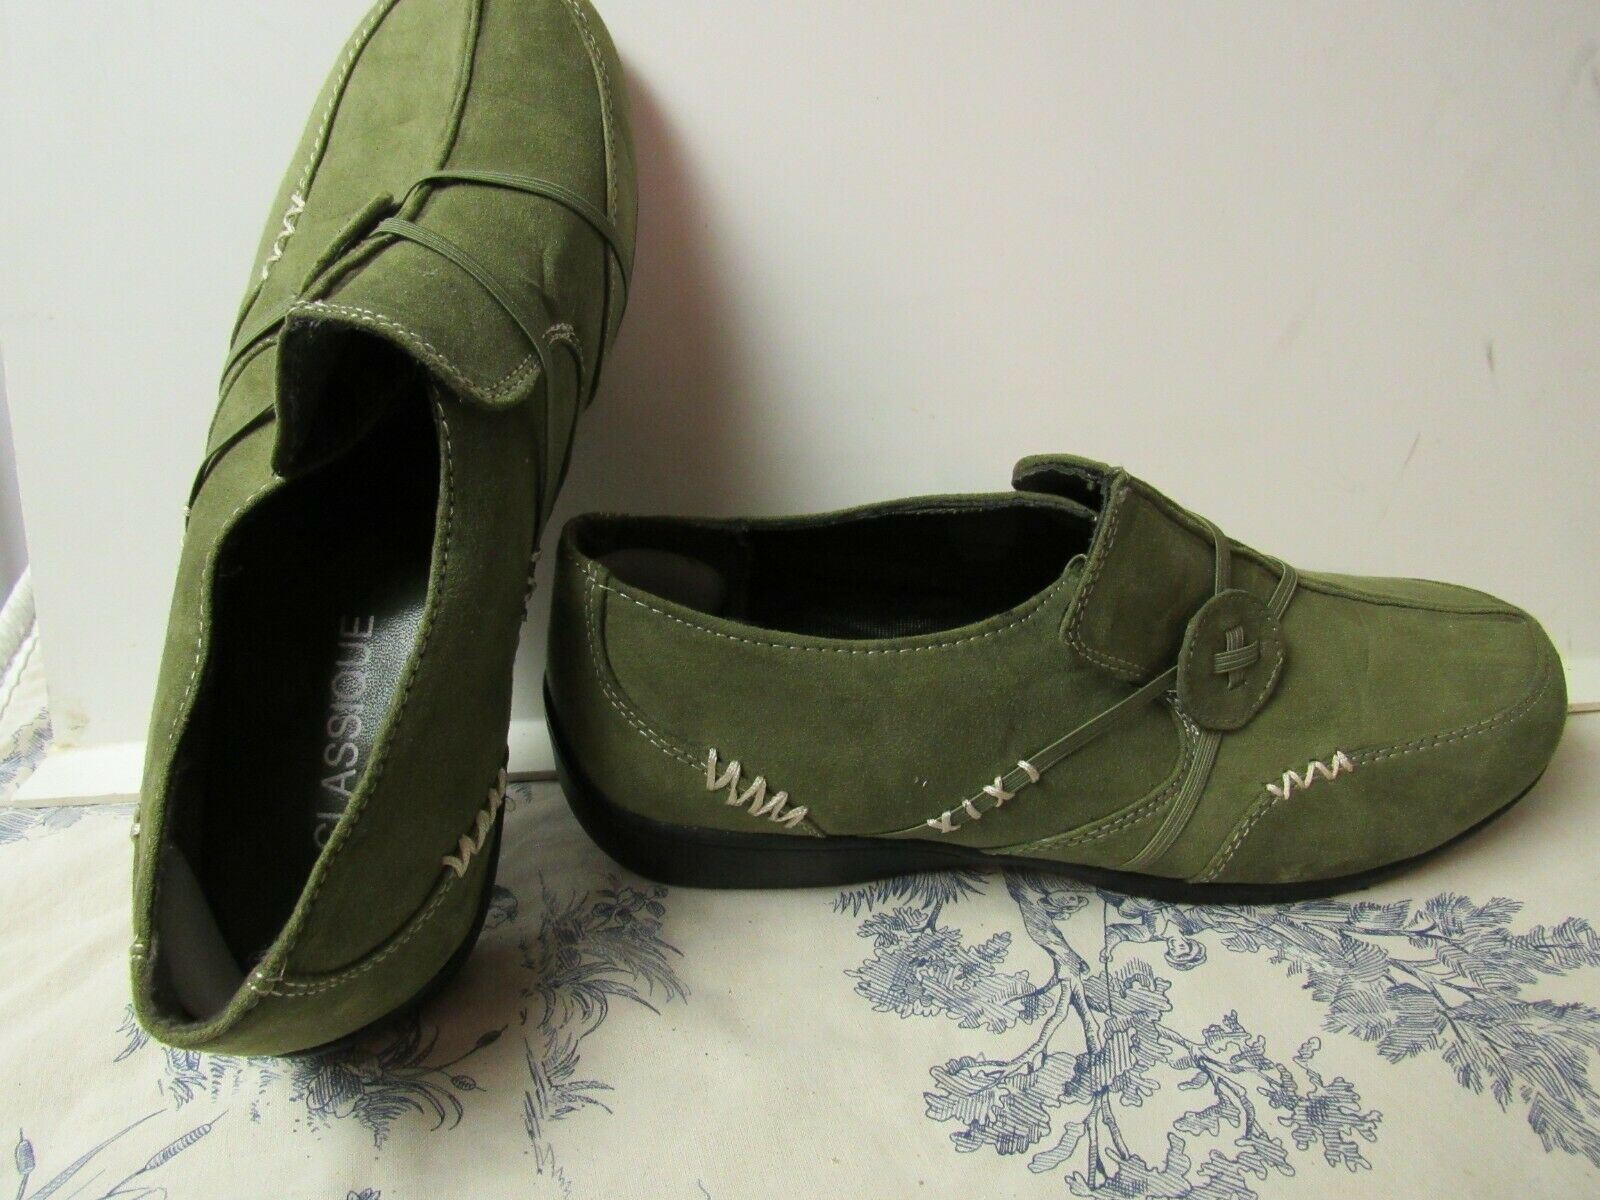 Women's Classique Brand Green Suede Casual Loafer Shoes